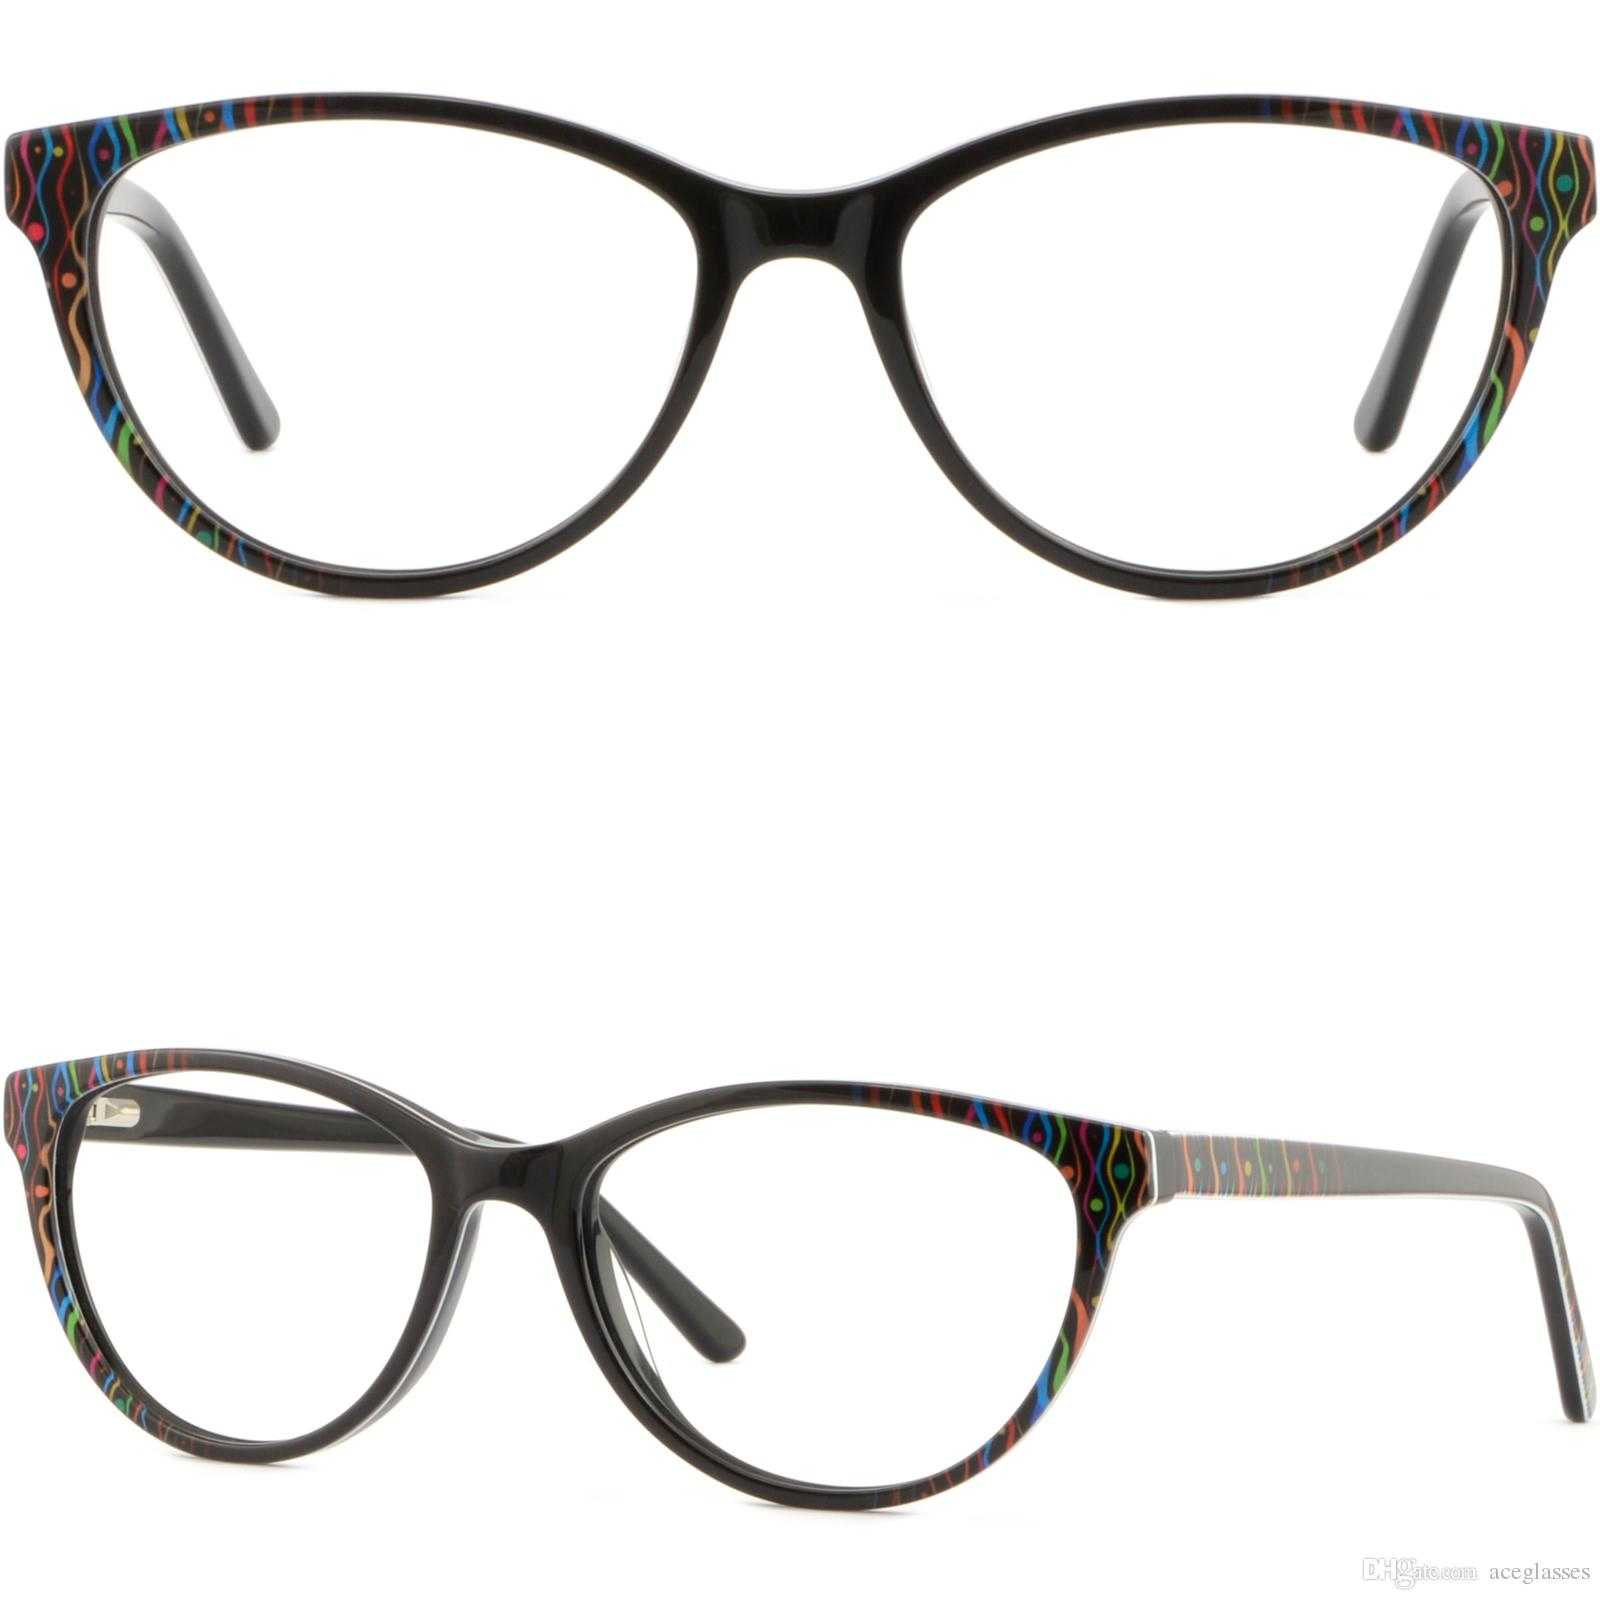 How To Clean Black Plastic Glasses Frames - Glass Designs